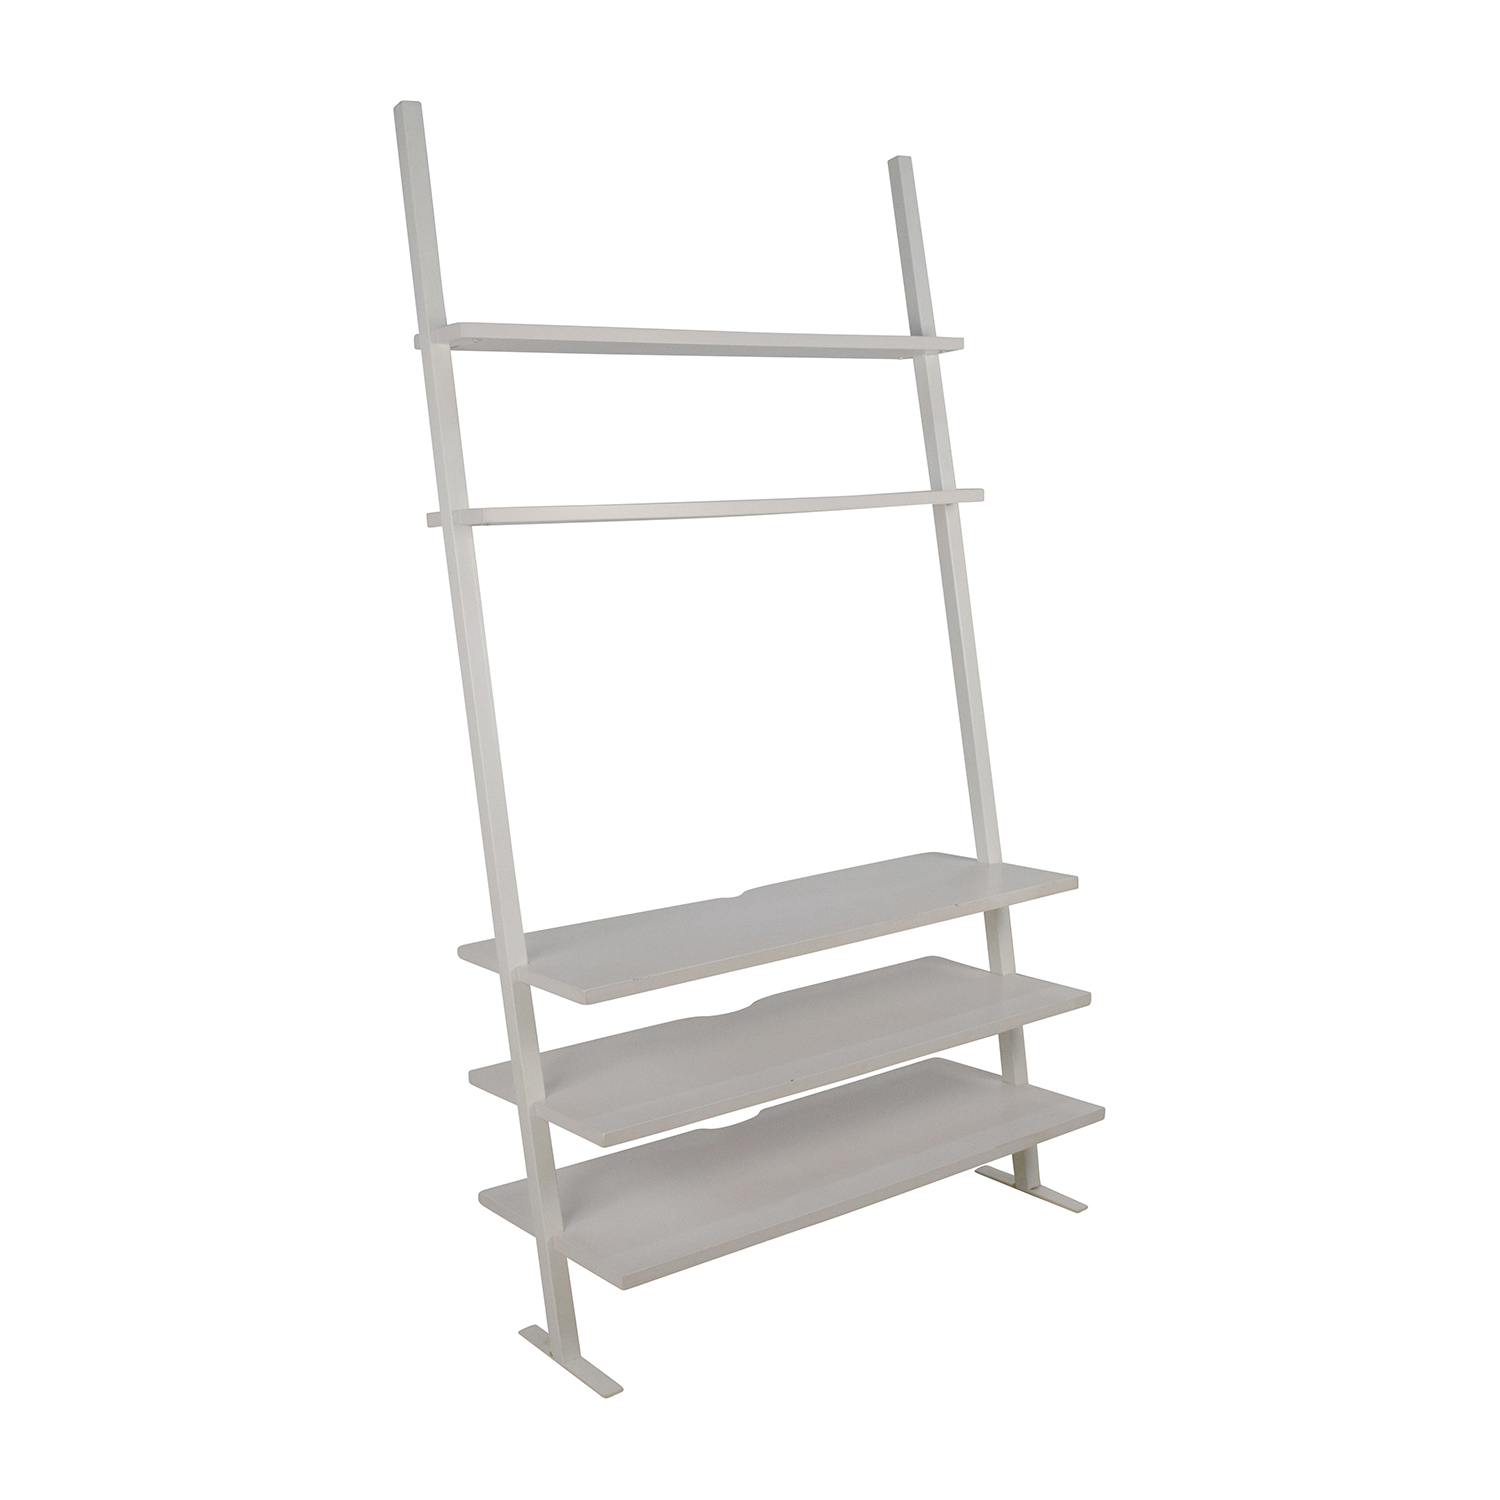 Room and Board Room & Board Gallery Media Leaning Shelves on sale